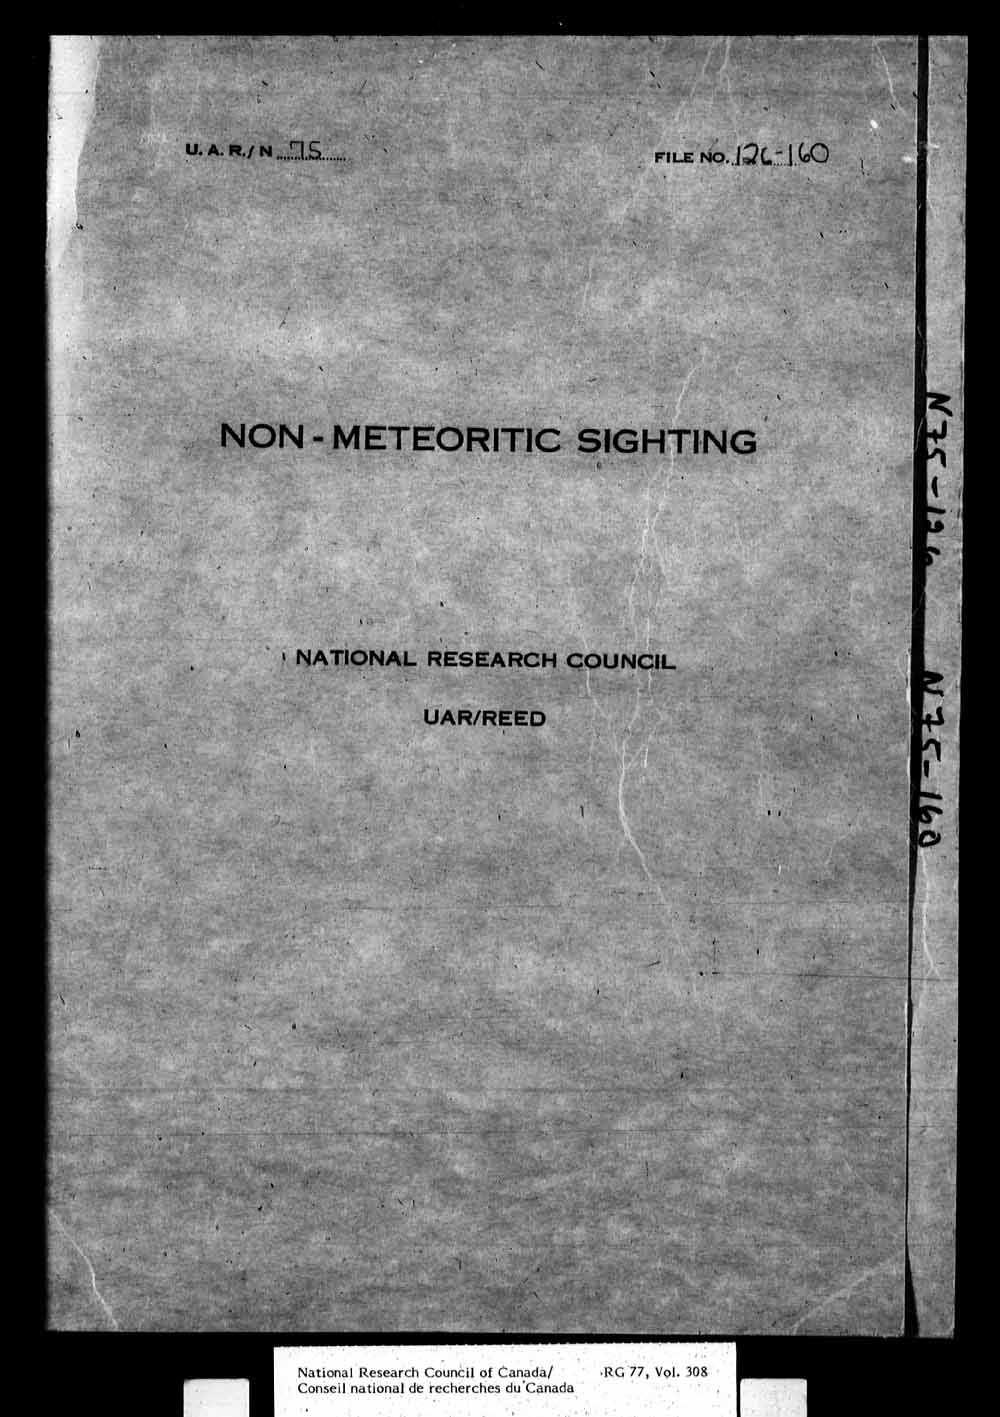 Herzberg Institute of Astrophysics - Reports on non-meteoric sightings, unidentified flying objects, UFO's